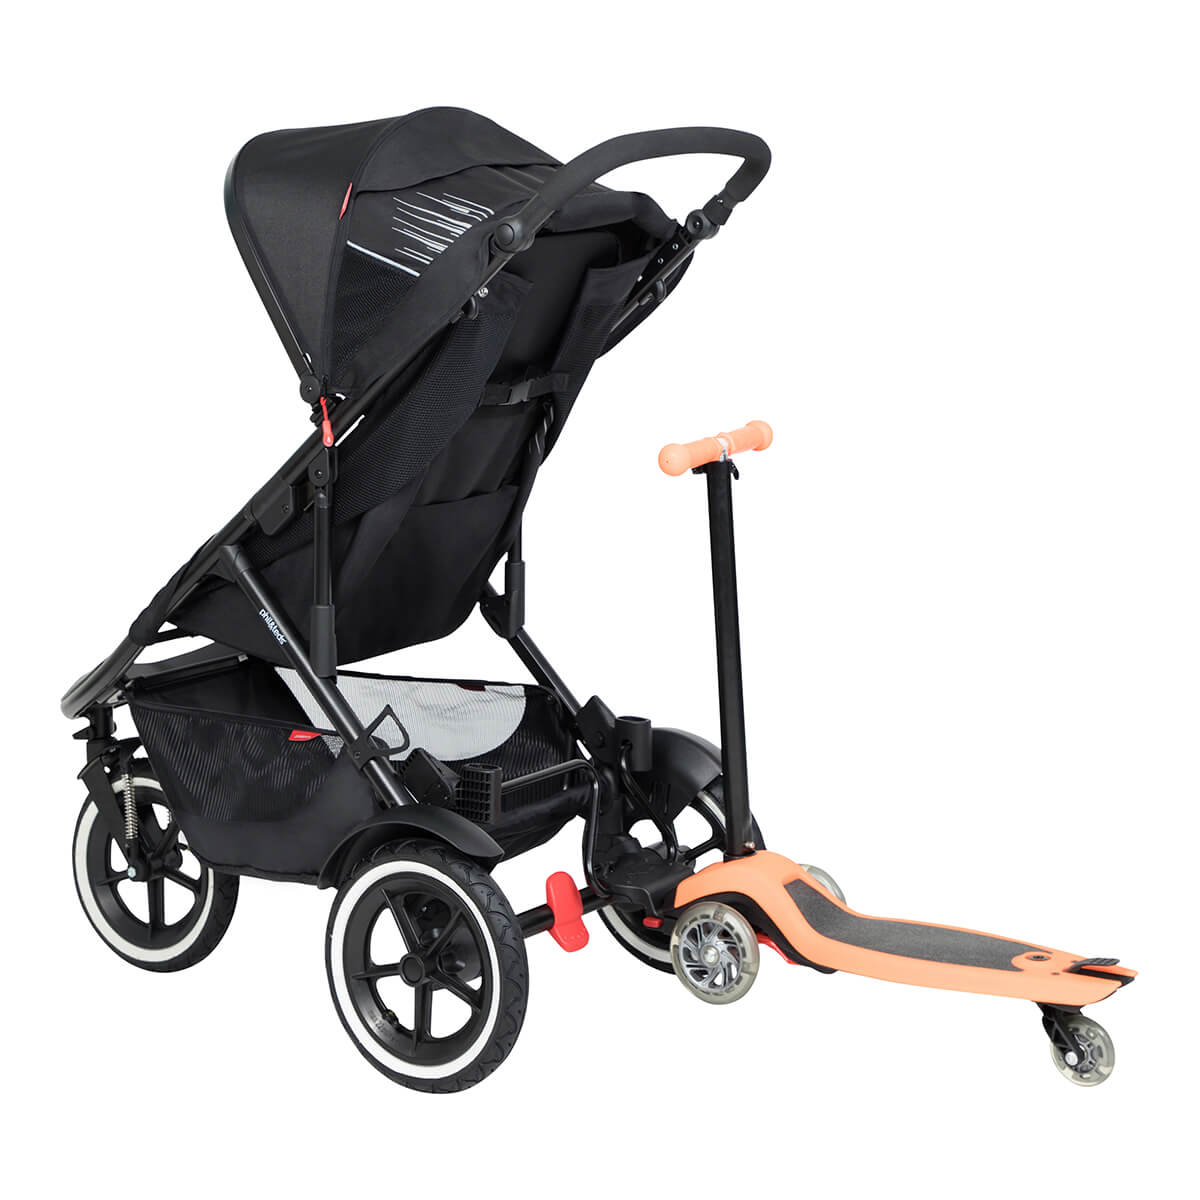 https://cdn.accentuate.io/4509526851672/19272668348504/philteds-sport-buggy-with-freerider-stroller-board-in-rear-v1626484309505.jpg?1200x1200